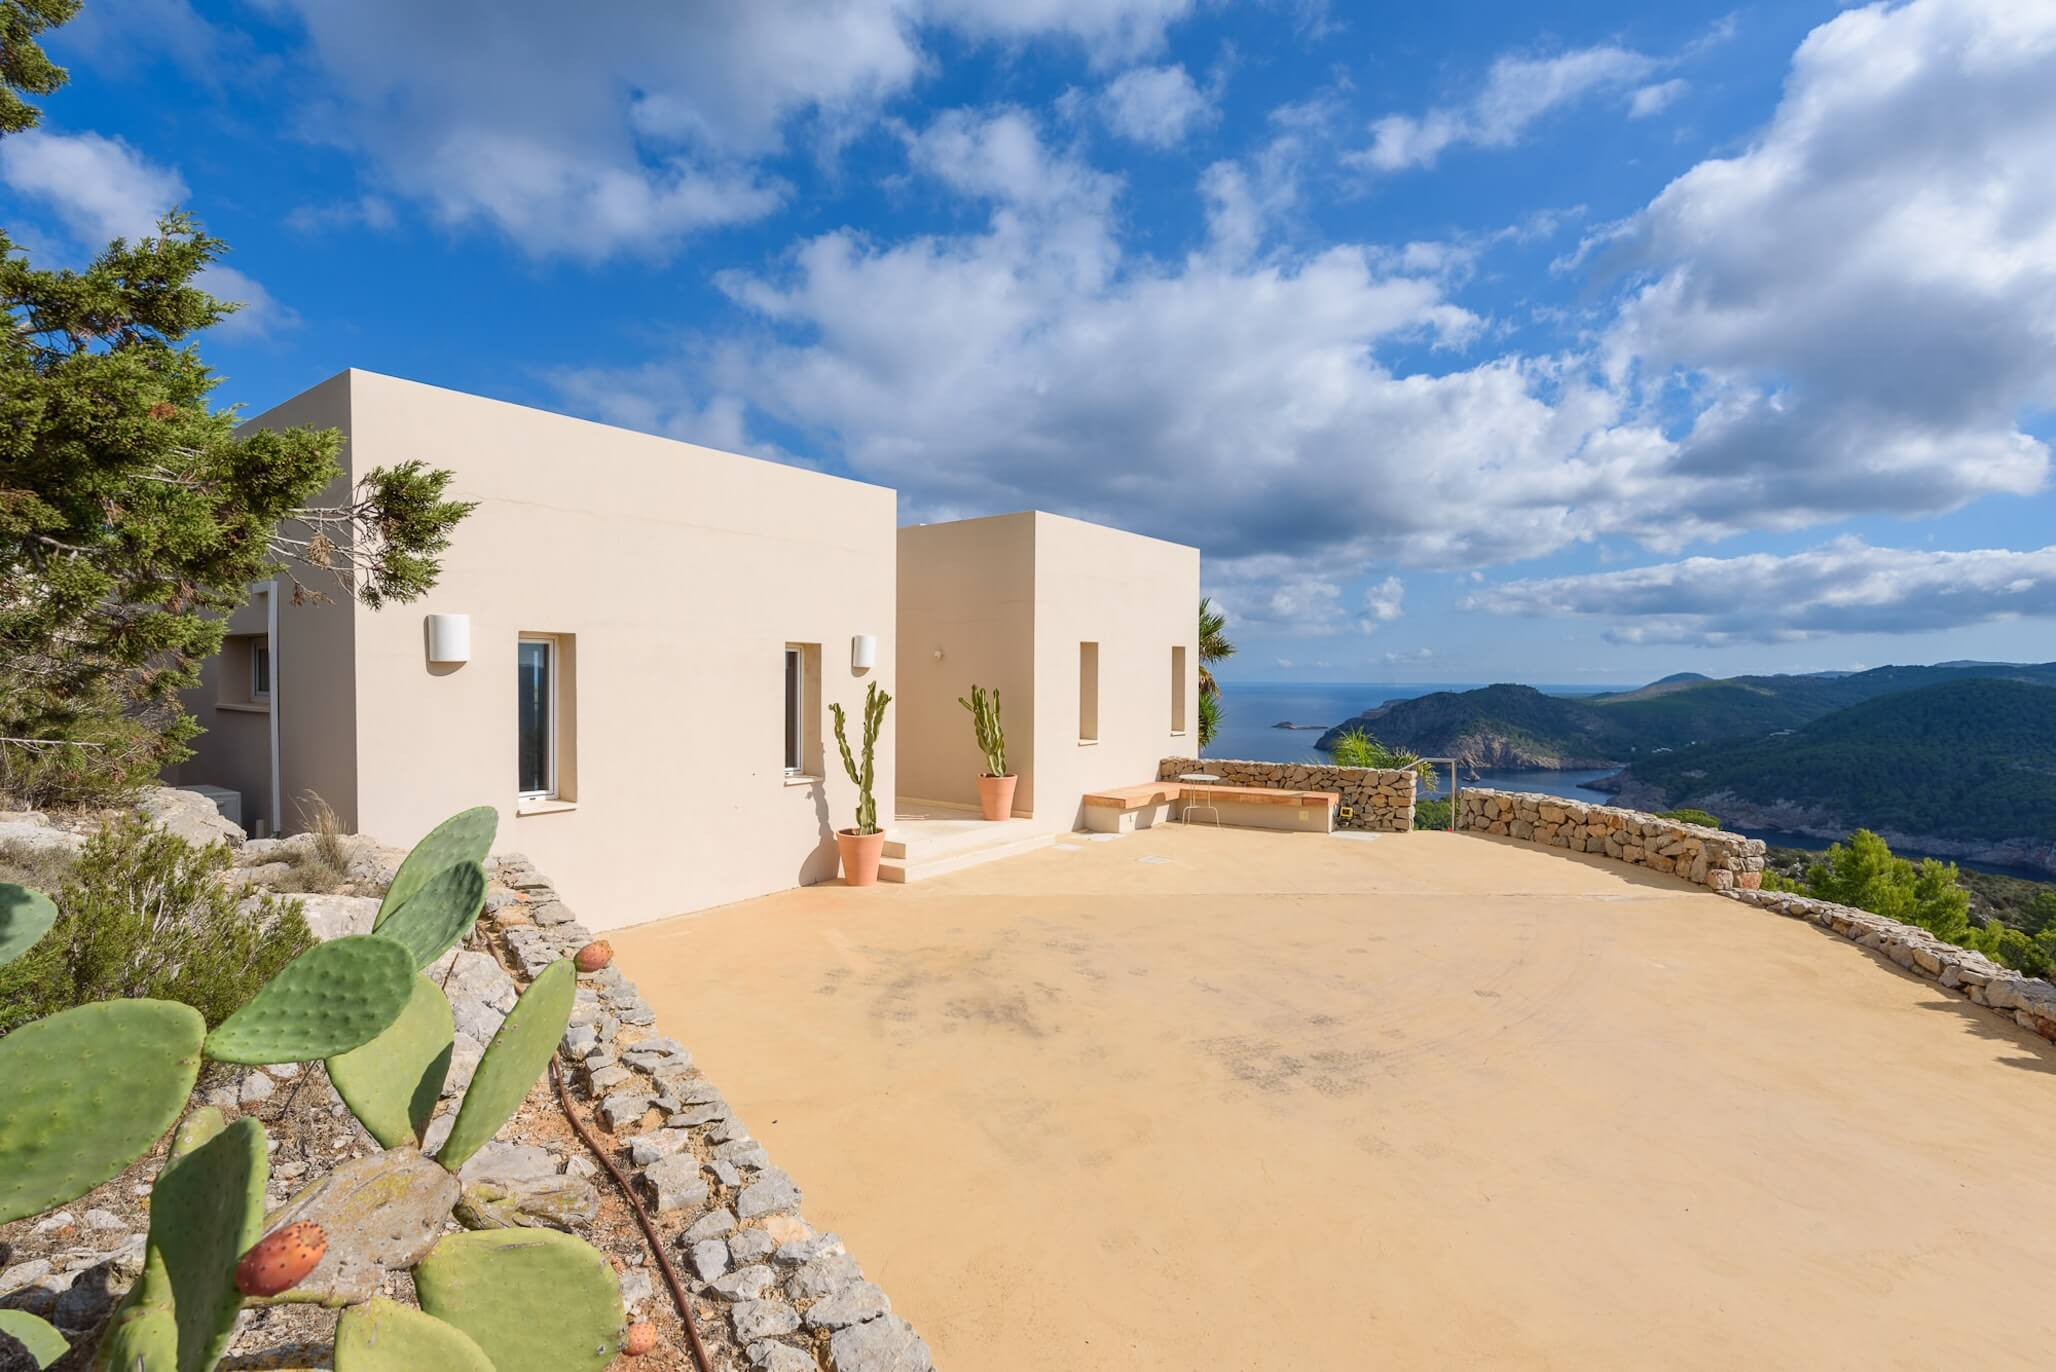 The villa is situated in a very peaceful area with astonishing views to Cala Benirras and a heliport a mere 200 metres from the property. Nearby, you'll find several excellent restaurants with the main village of San Miguel is a 10-miunte drive with a good range of shops and further restaurants. Some lovely beaches and sweeping sandy bays are equally close at hand. The airport of Ibiza is just a 40-minute drive away.